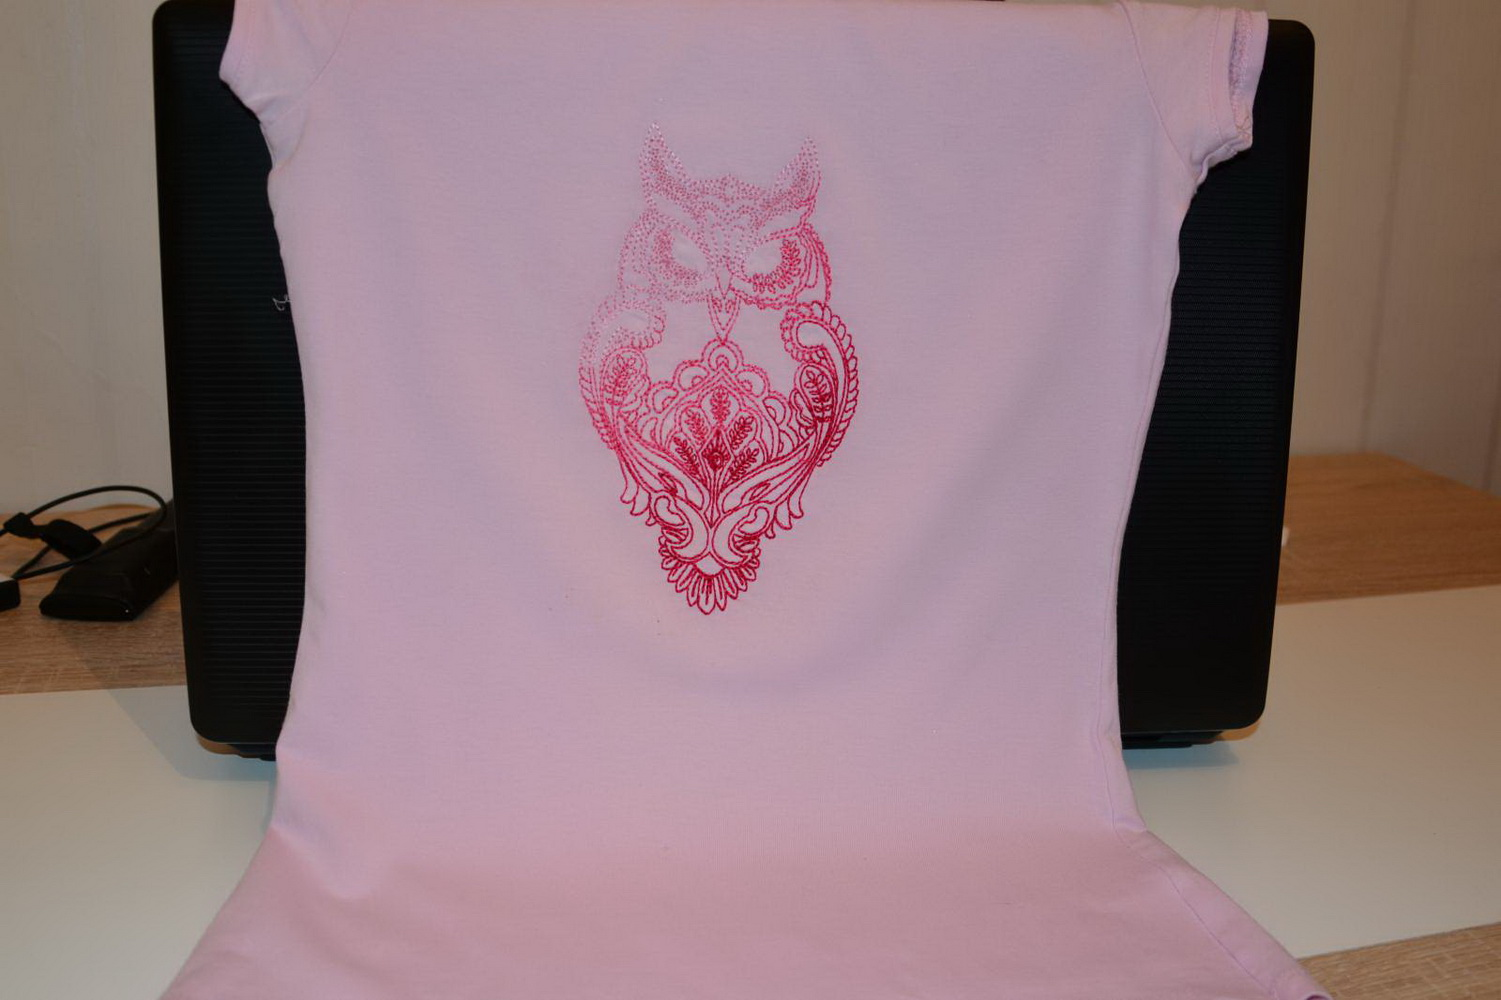 Owl blend design on t-shirt embroidered